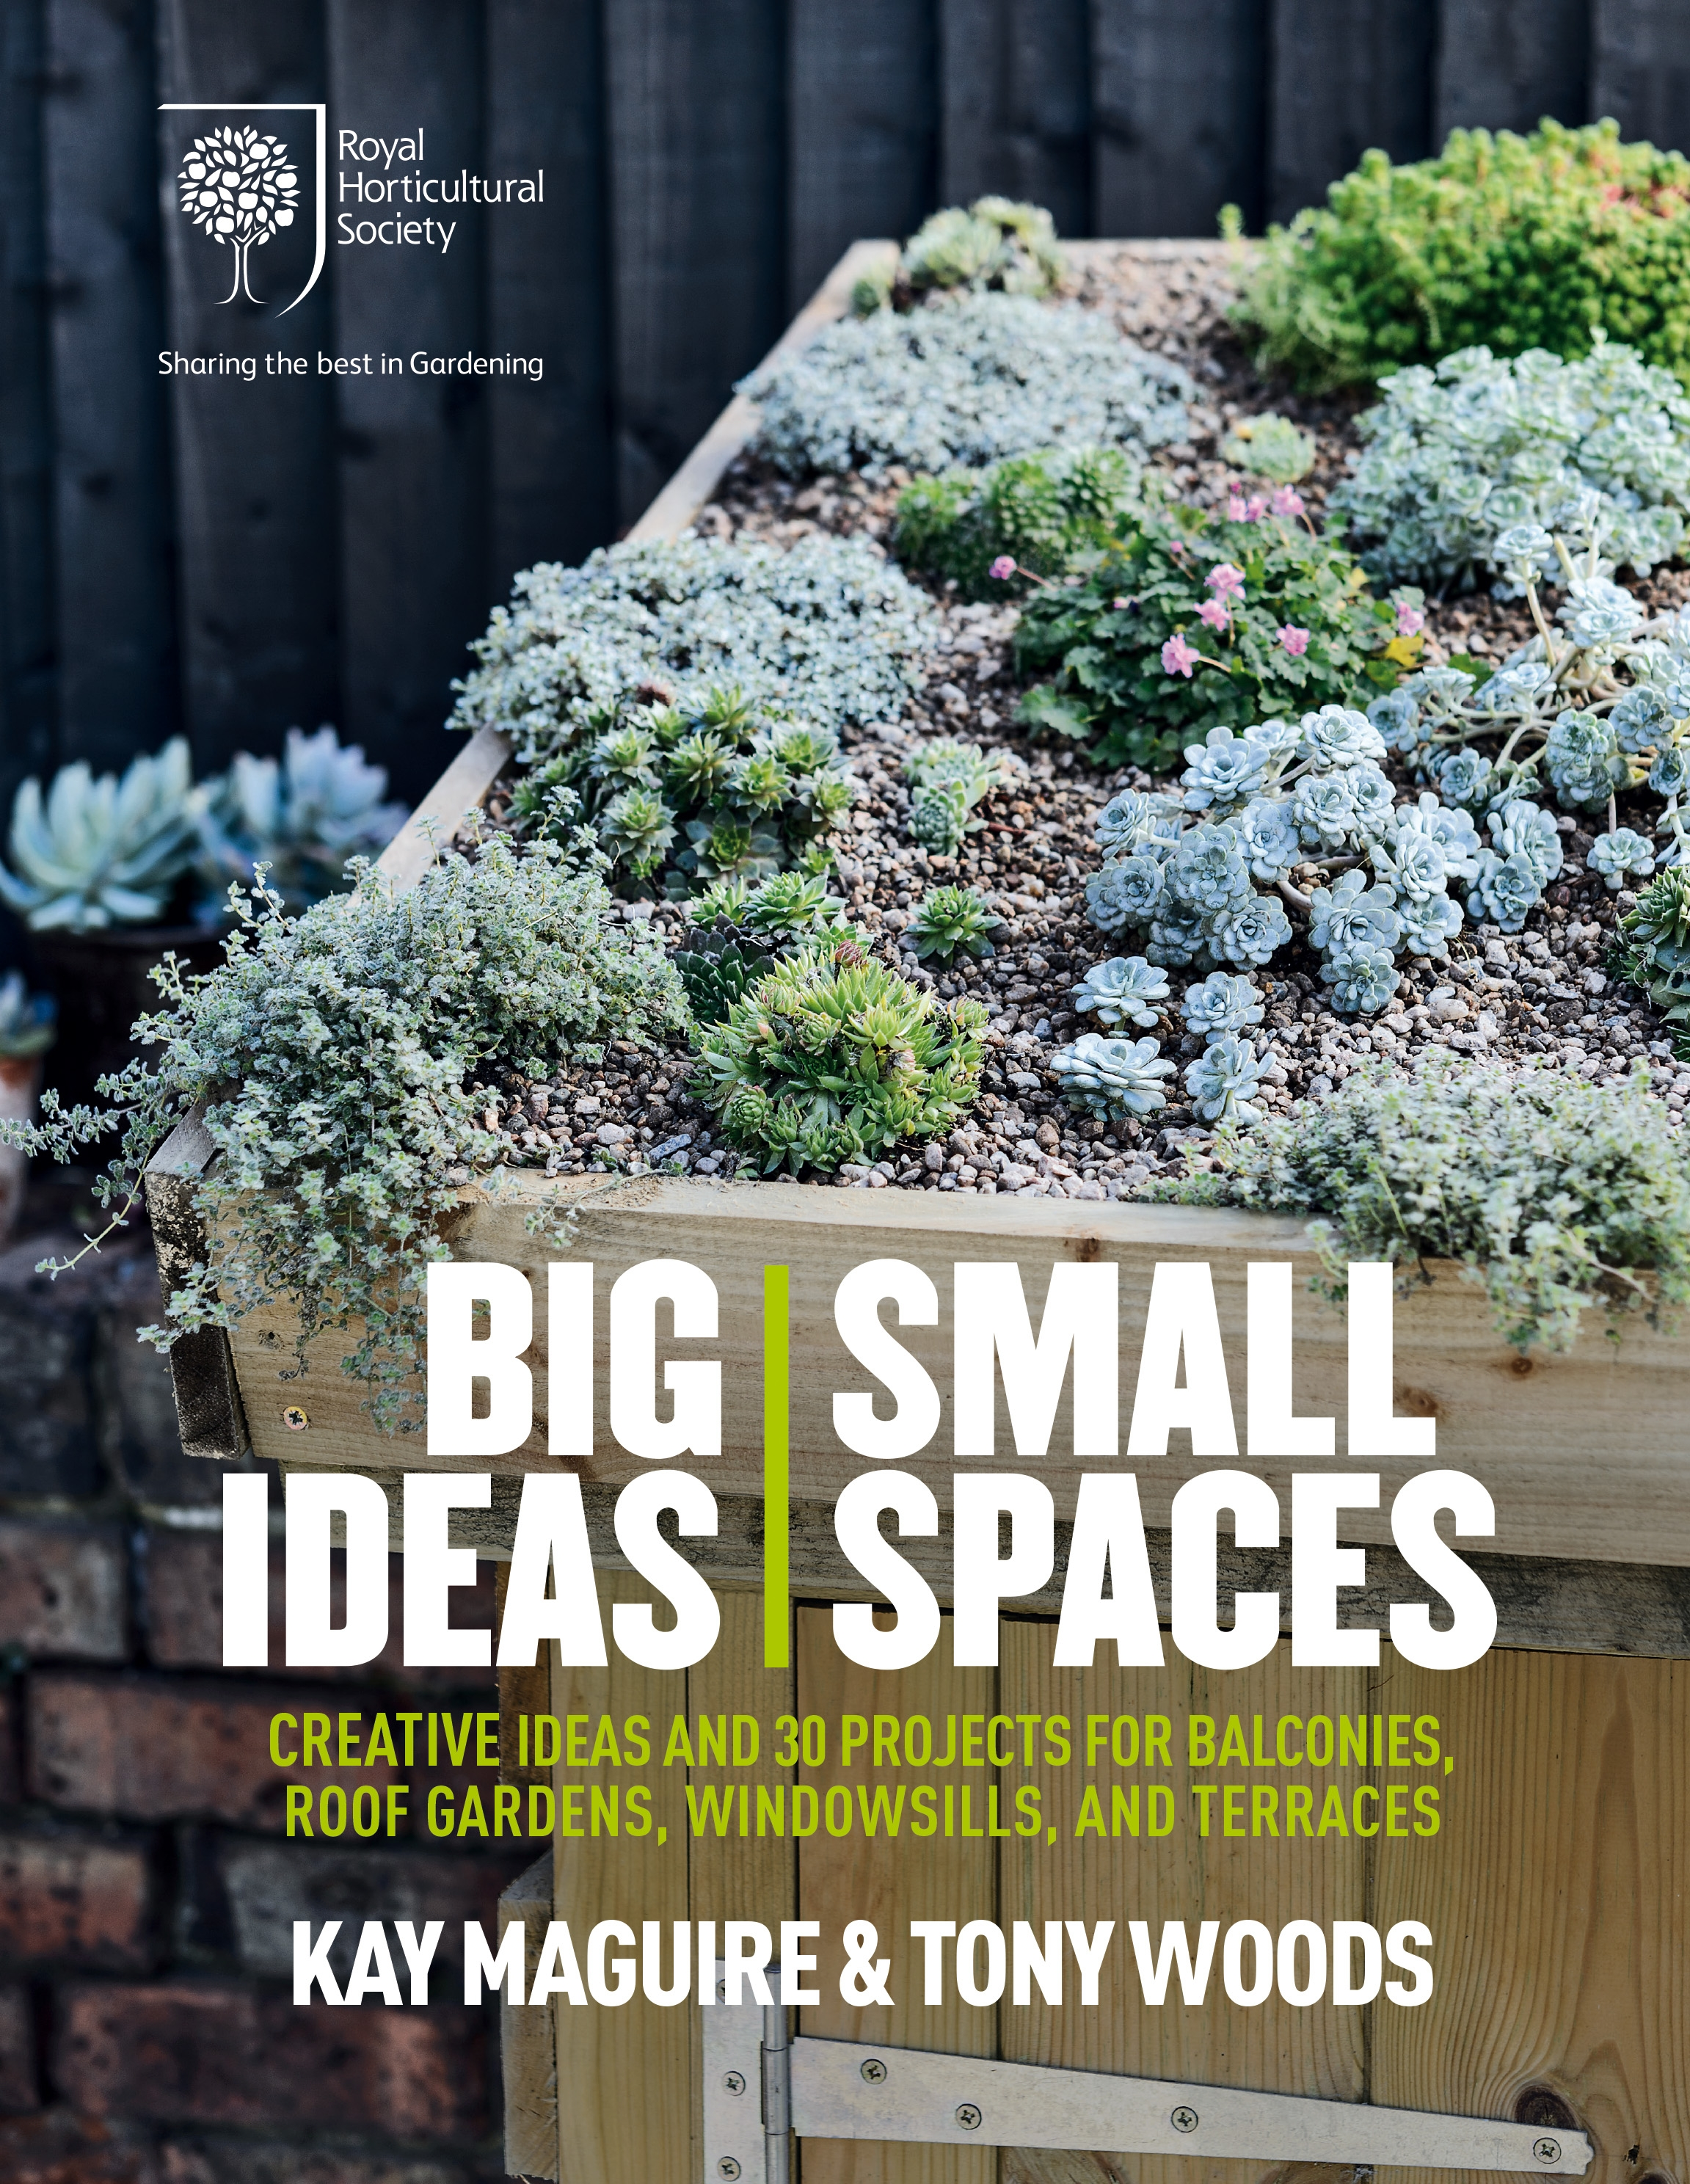 Rhs Big Ideas Small Spaces By Kay Maguire The Home Of Non Fiction Publishing